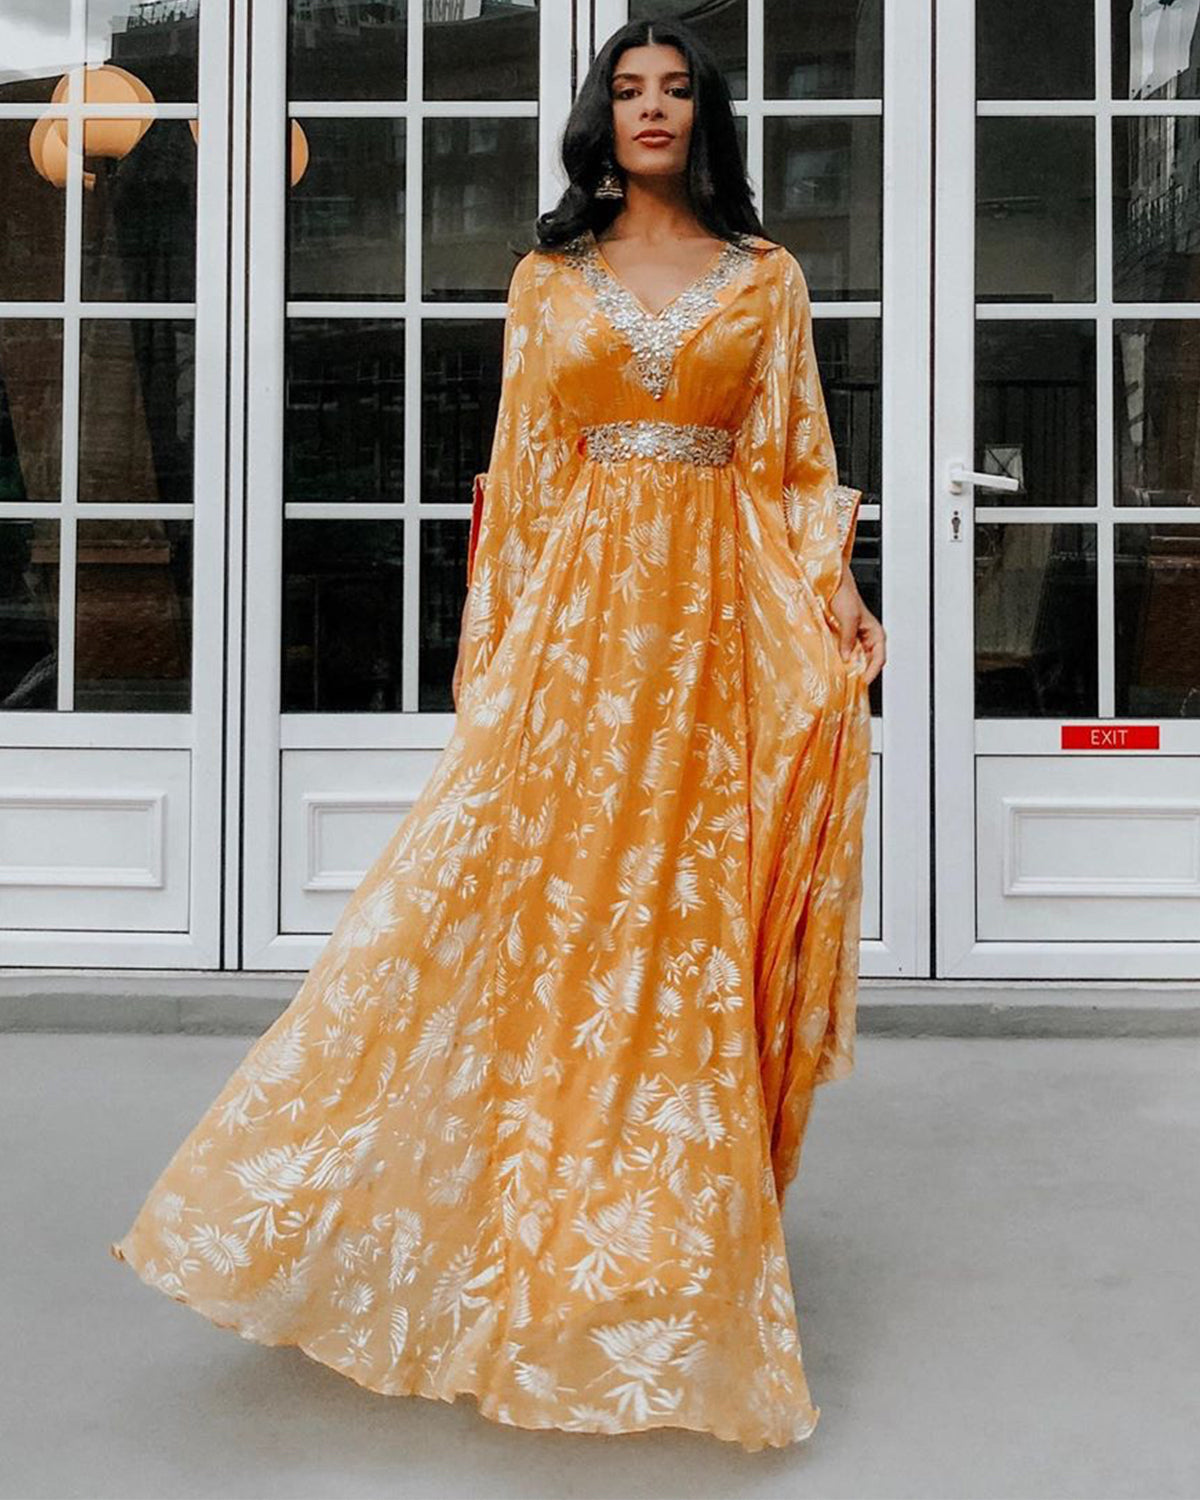 Bright Orange and Gold Chiffon Kaftan